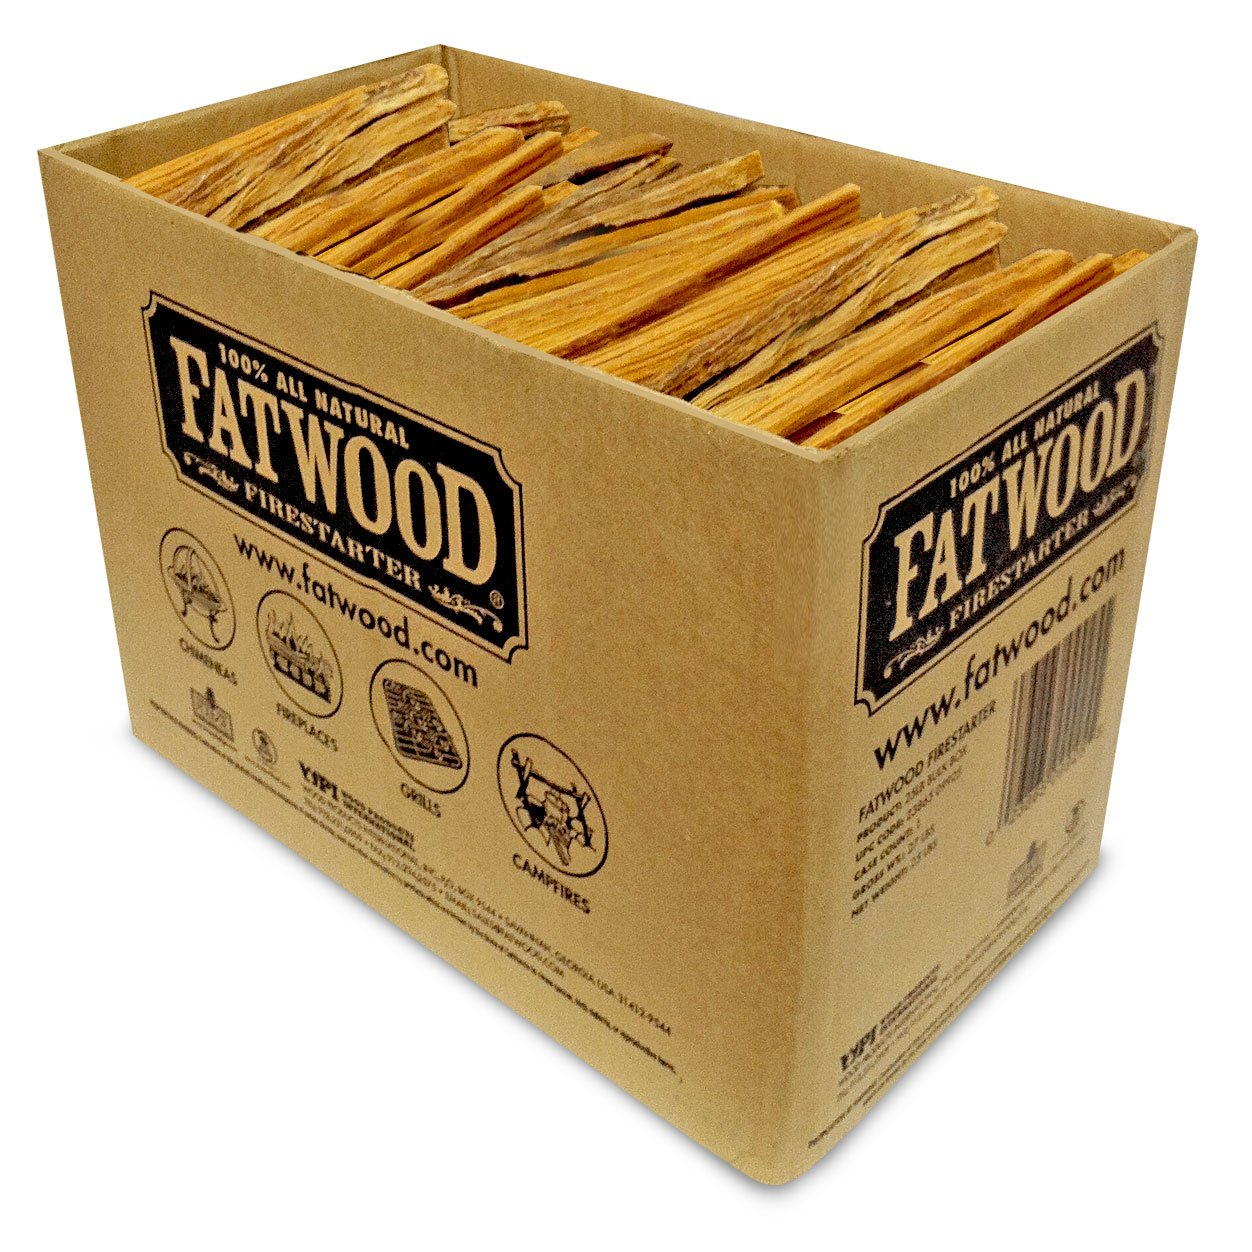 Better Wood Products Fatwood Firestarter Box, 25-Pounds by Better Wood Products